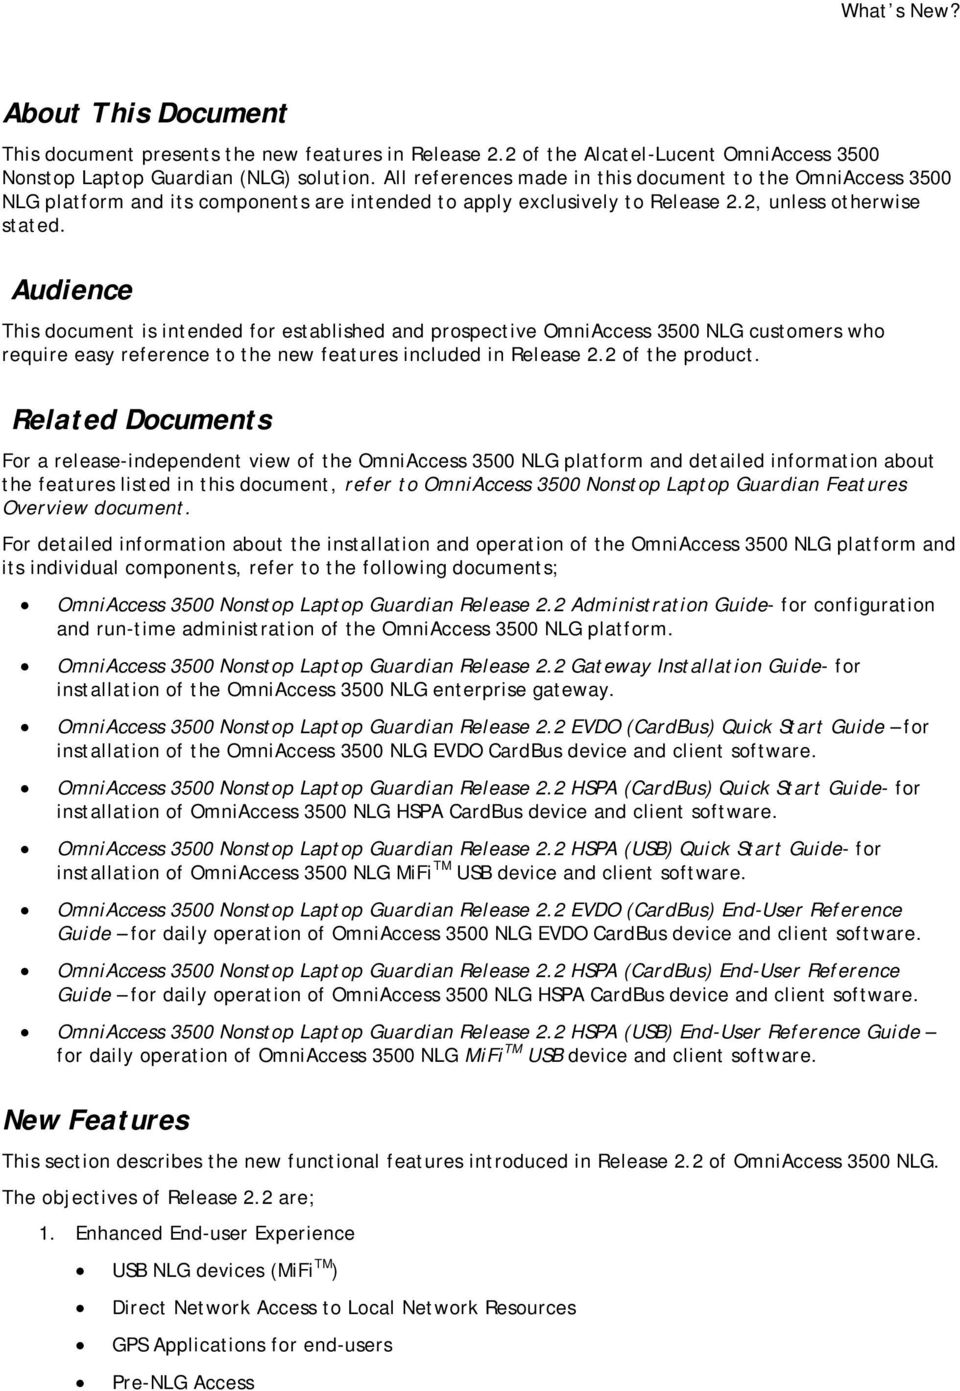 Audience This document is intended for established and prospective OmniAccess 3500 NLG customers who require easy reference to the new features included in Release 2.2 of the product.